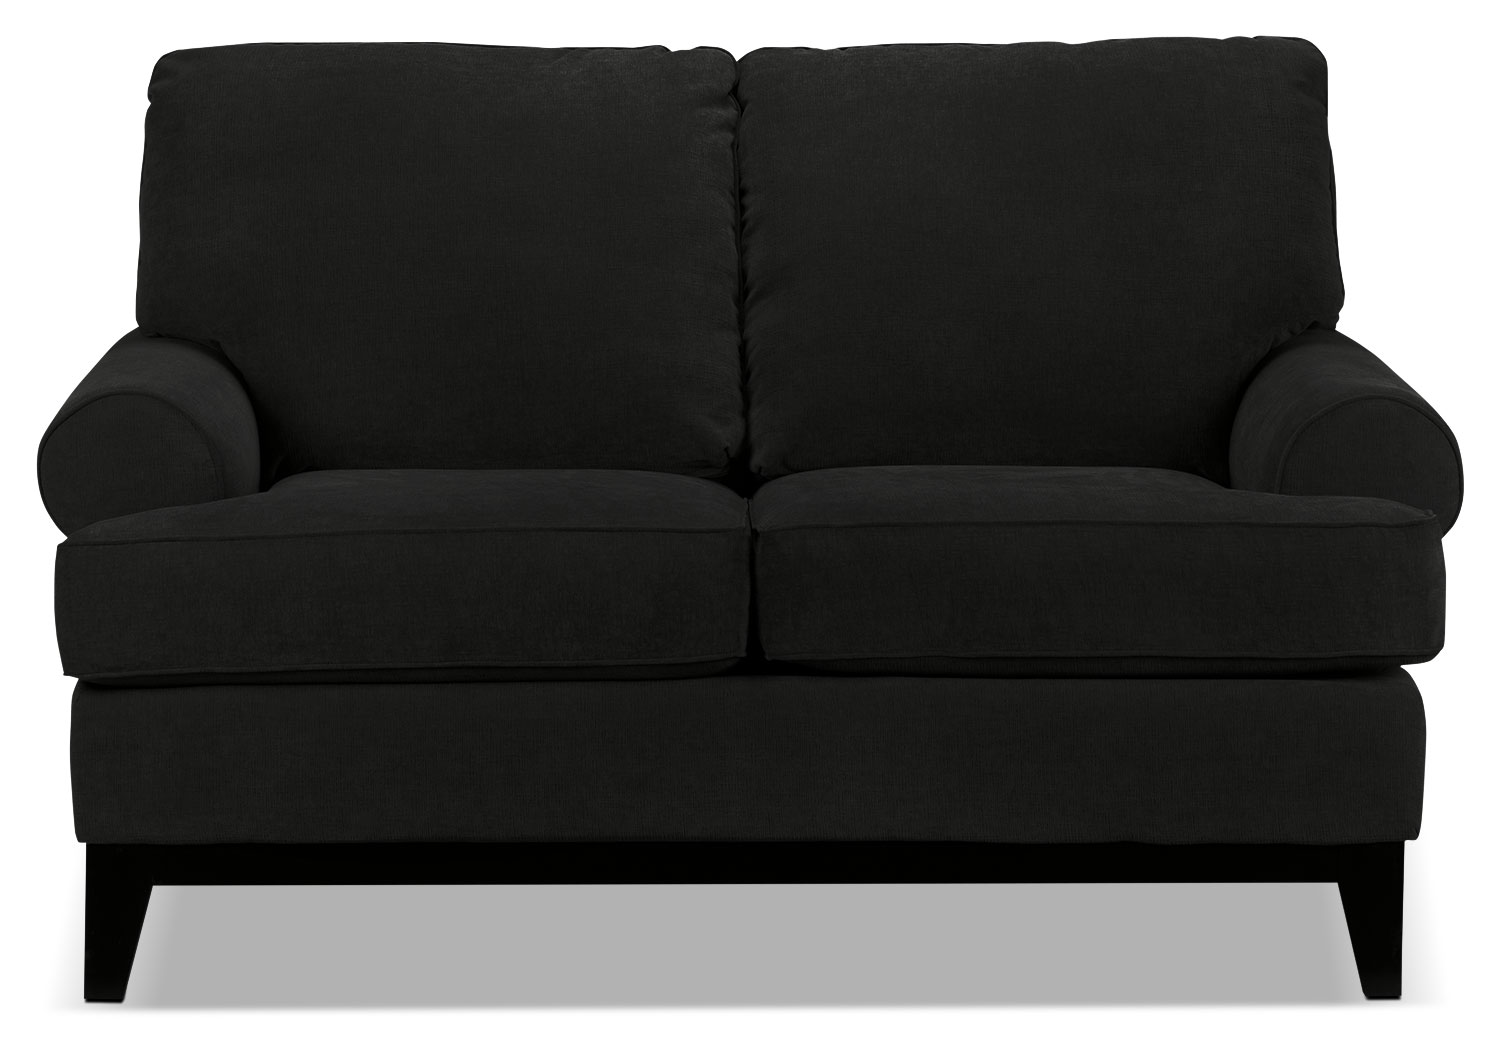 Crizia Loveseat - Black